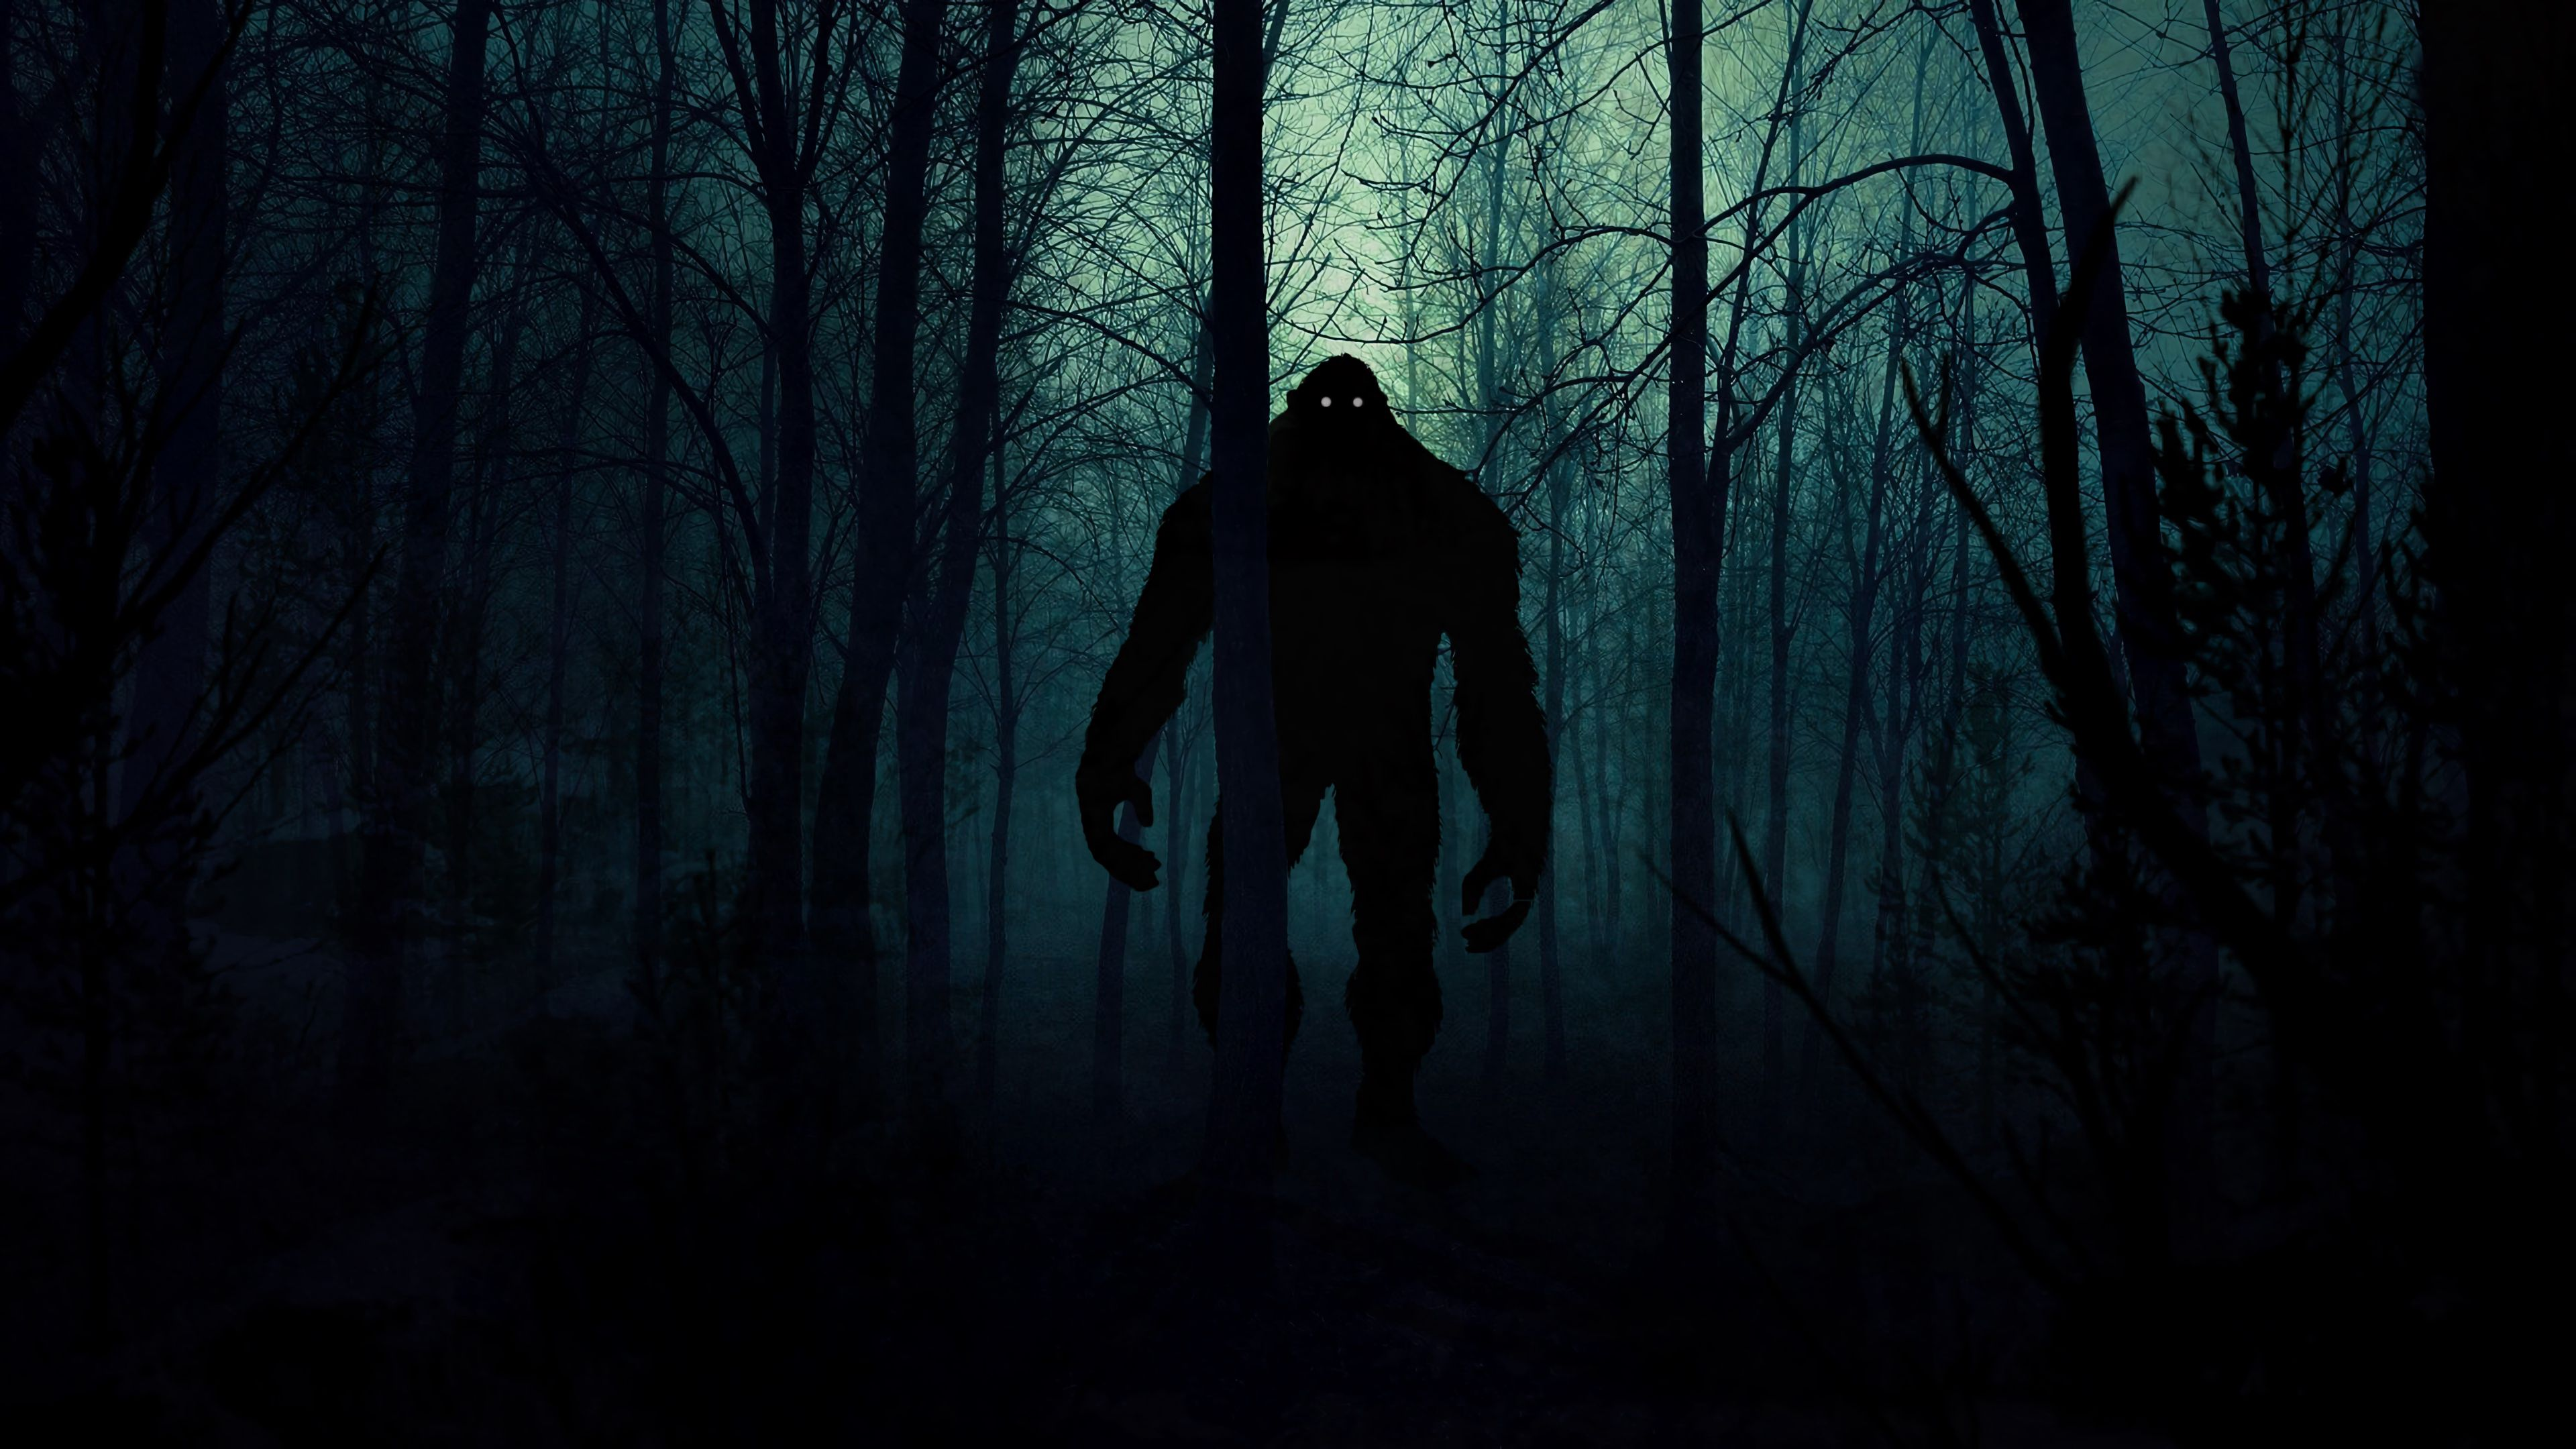 124382 download wallpaper Night, Dark, Art, Silhouette, Forest, Monster screensavers and pictures for free